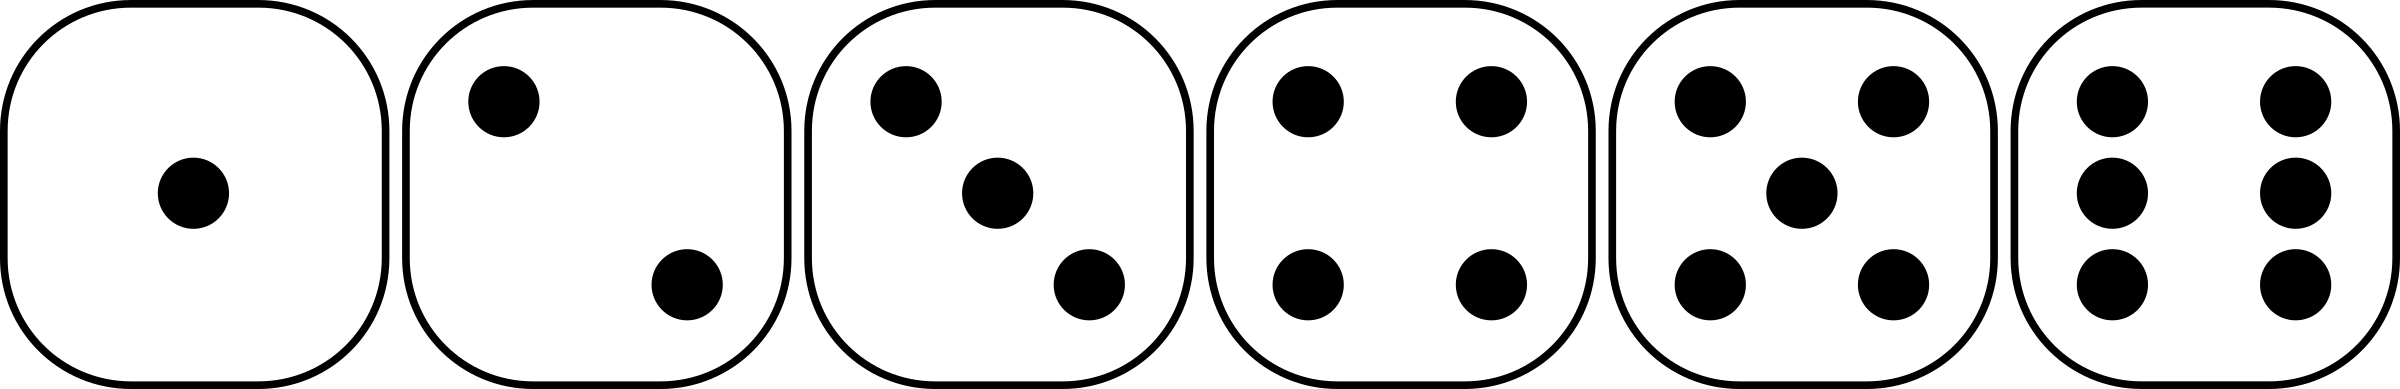 Six-sided Dice Clipart - Clipart Suggest